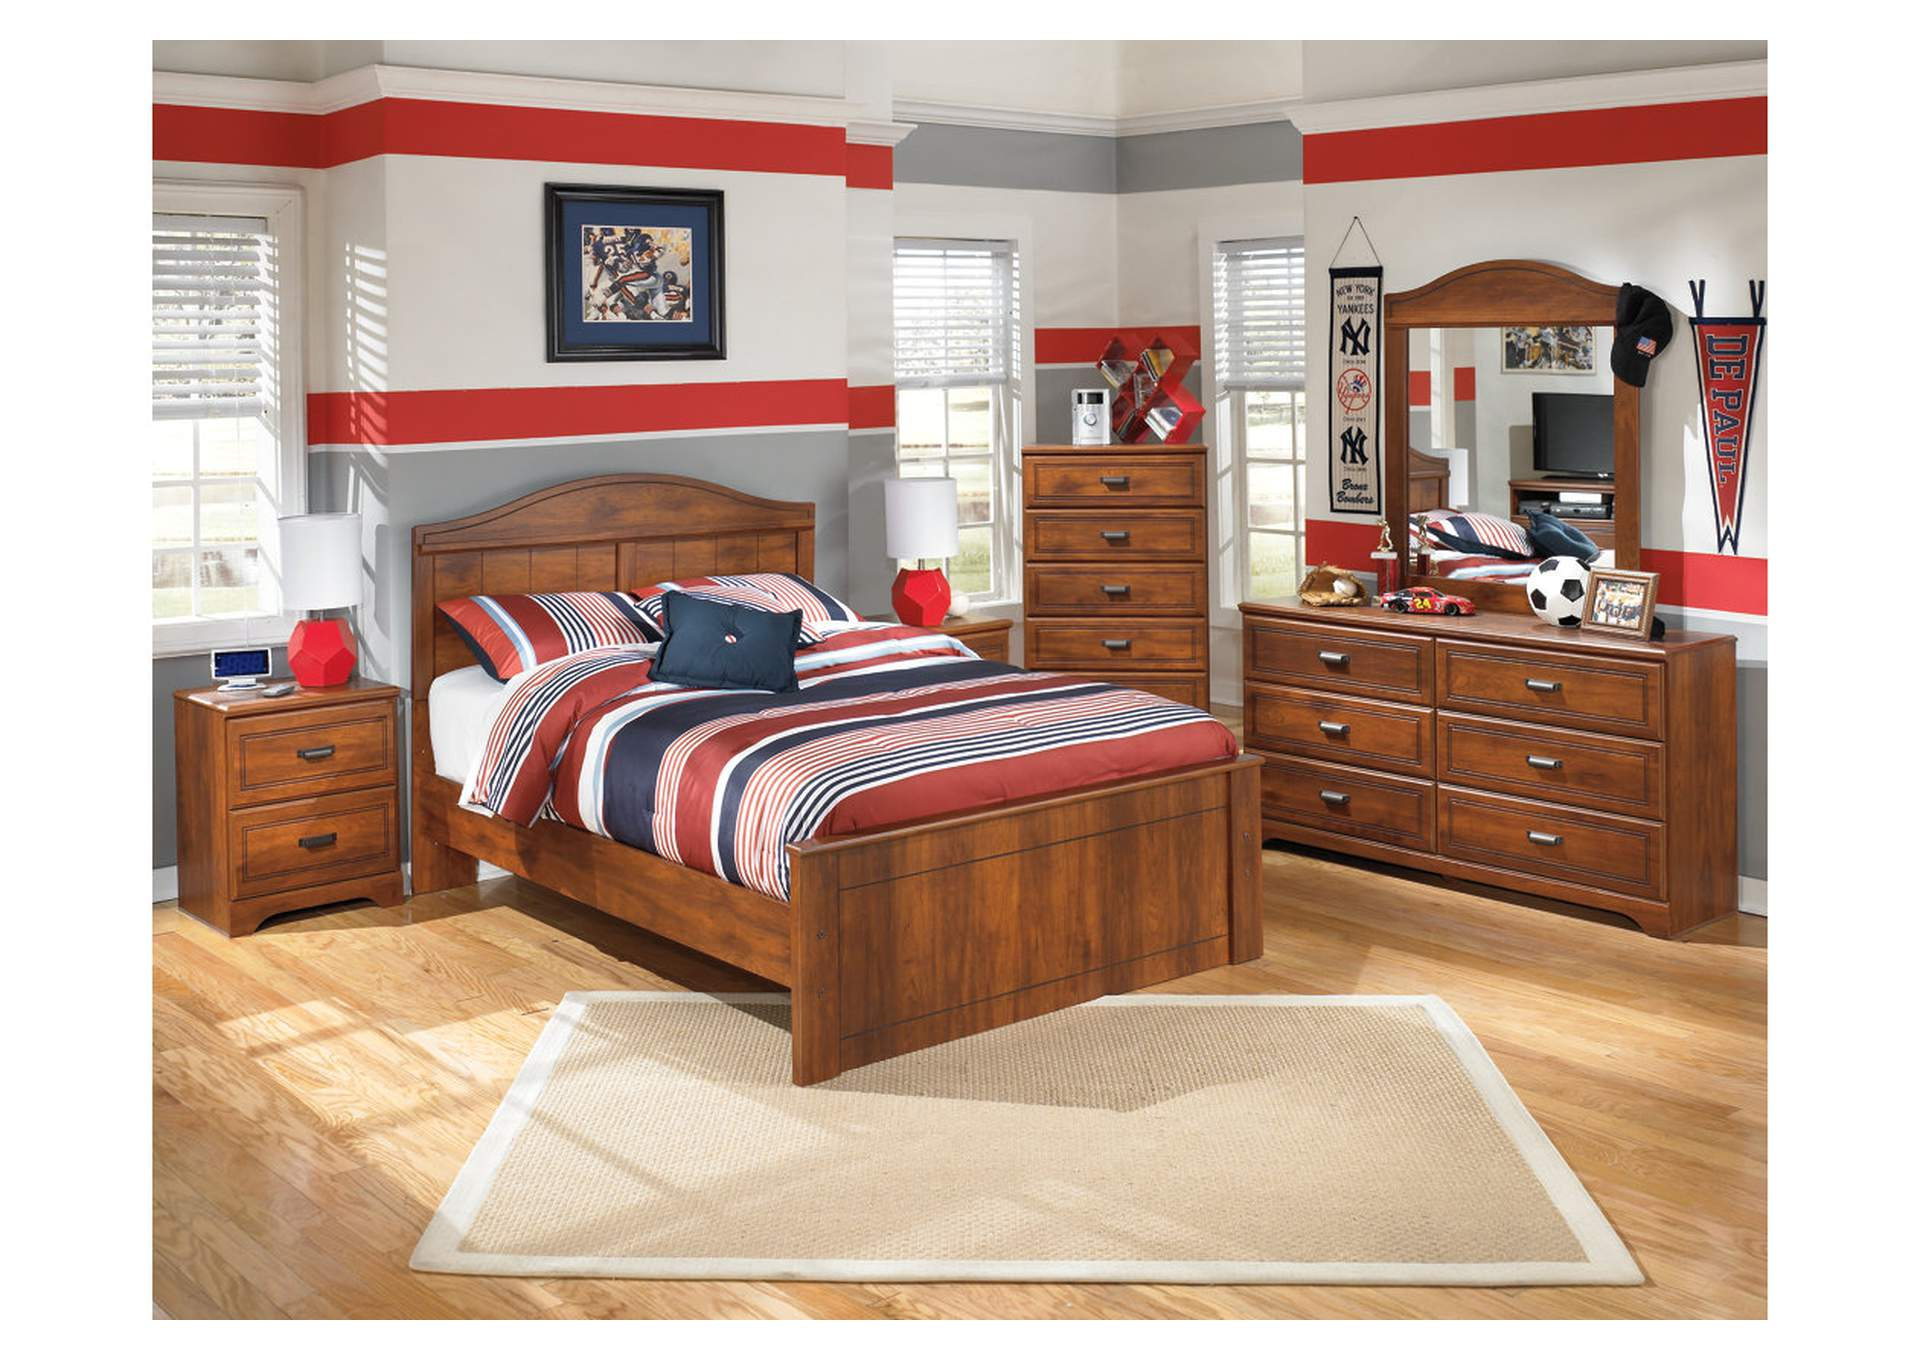 Barchan Full Panel Bed w/Dresser, Mirror & Nightstand,Signature Design By Ashley